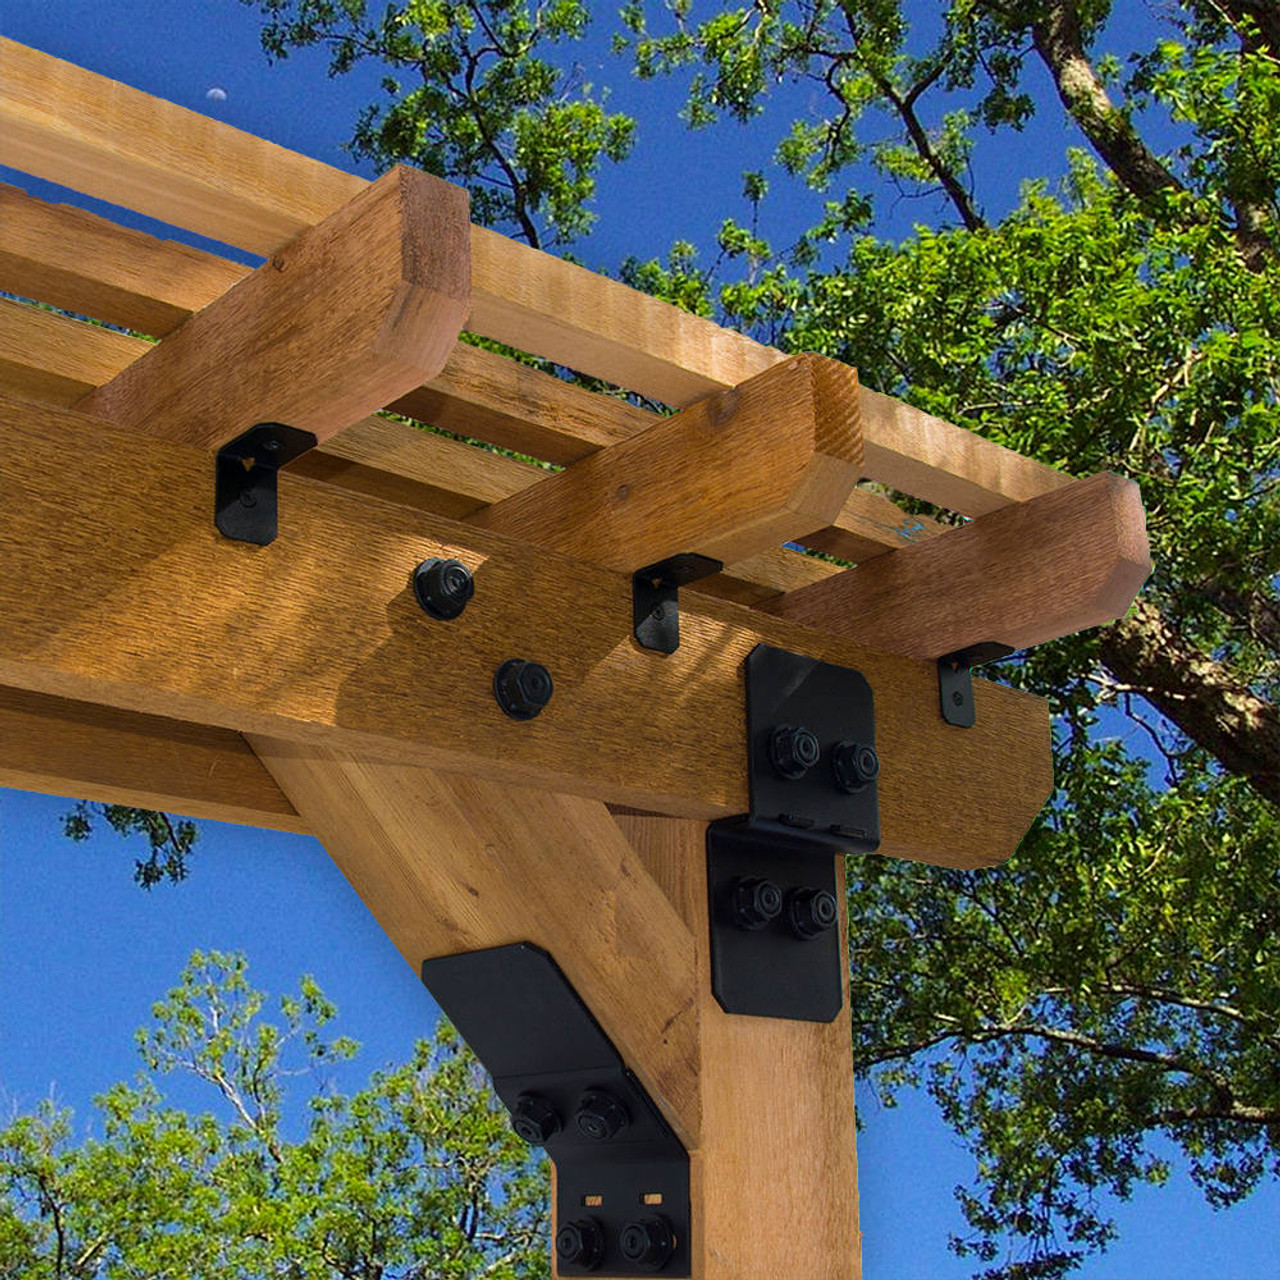 Wood Structure Using OZCO OWT Ironwood Truss Accent Plates